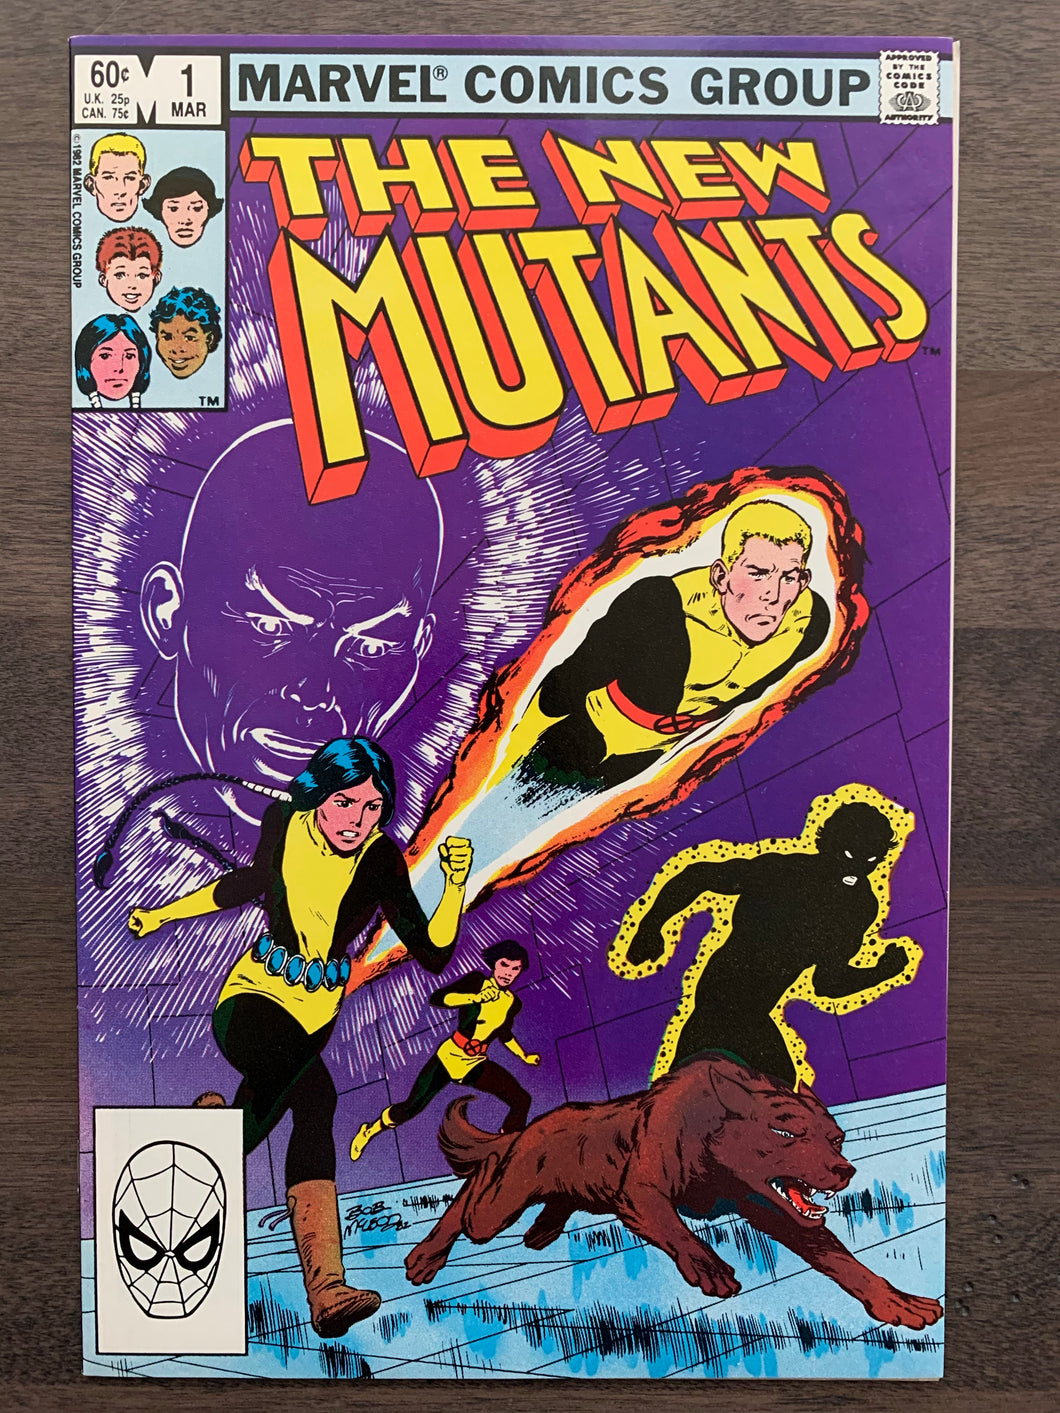 New Mutants #1 - 2nd New Mutants